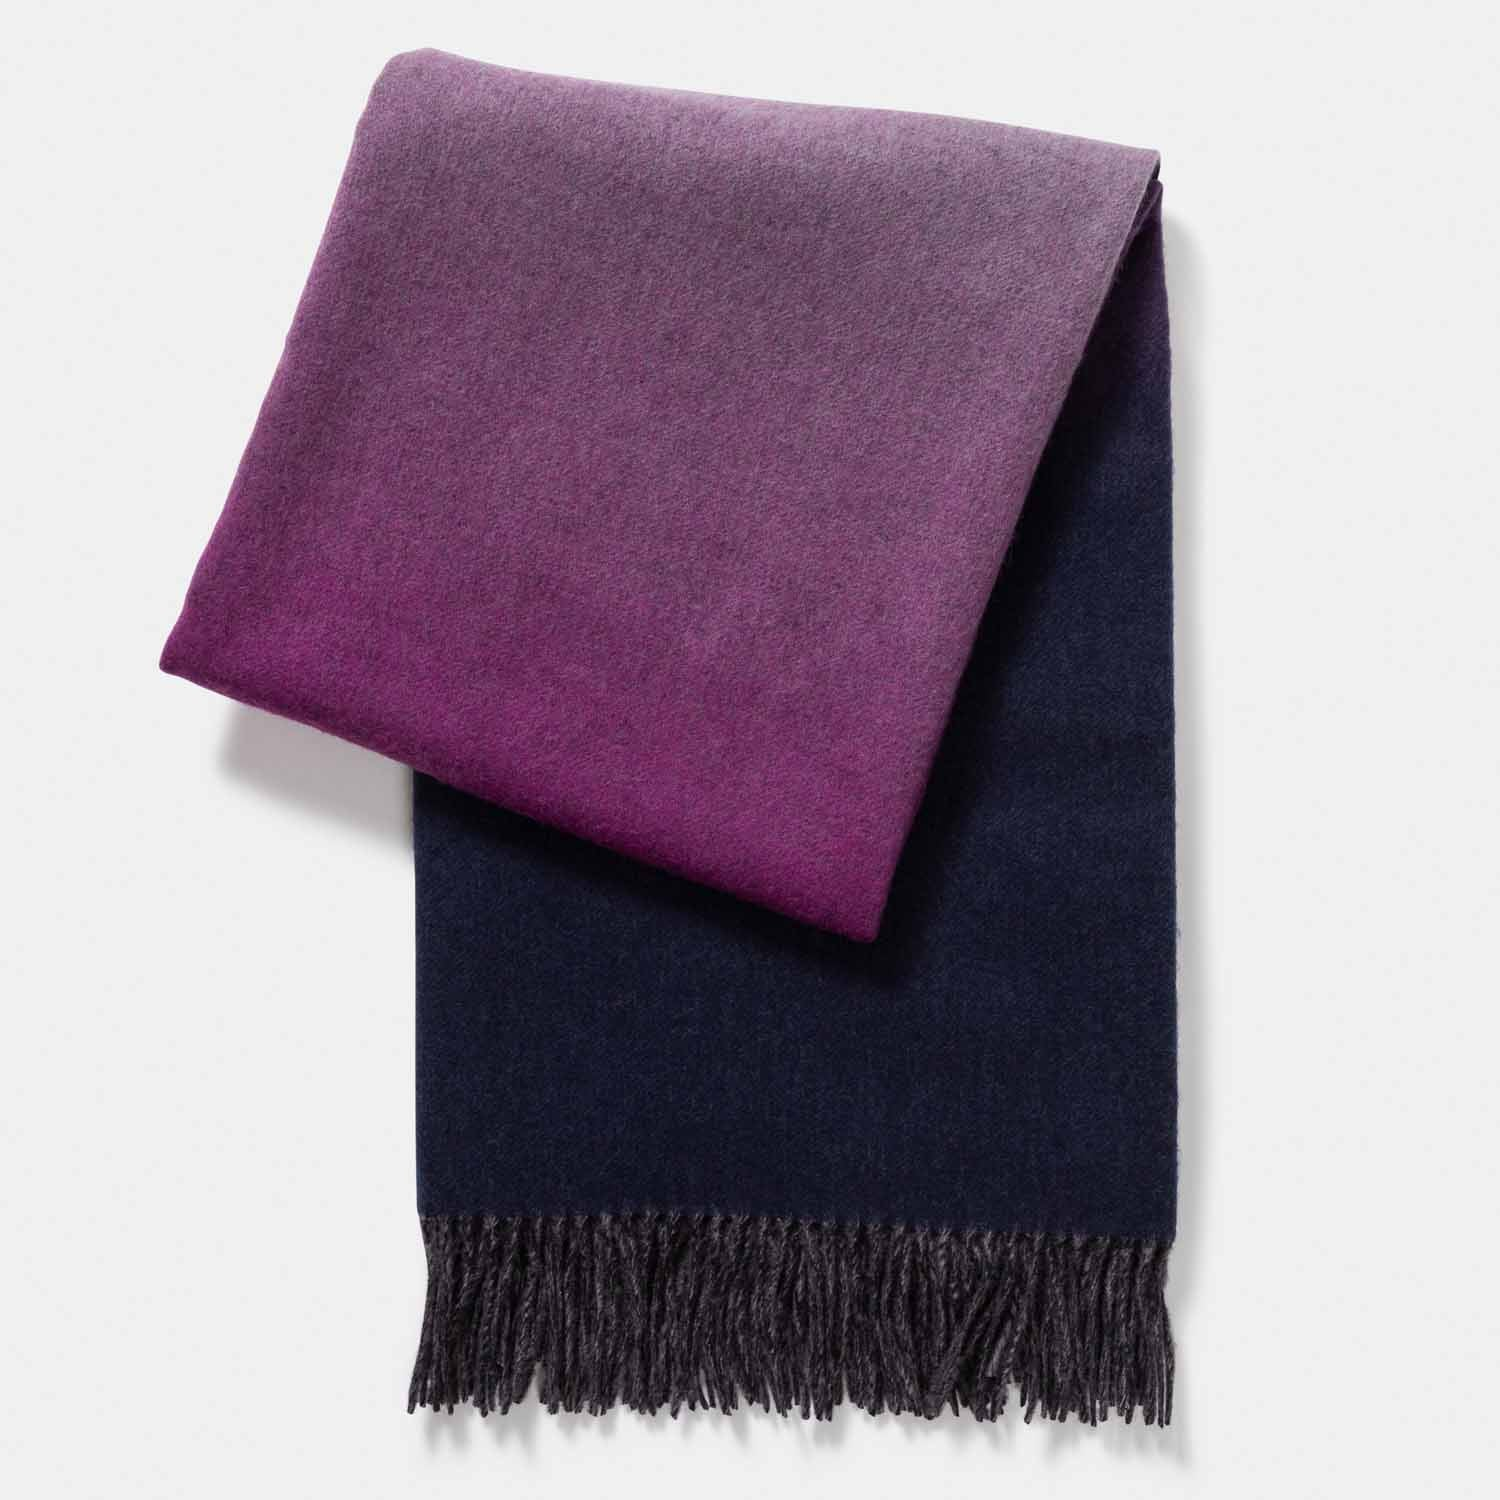 Cashmere Blend Ombre Throw-Amicale Cashmere